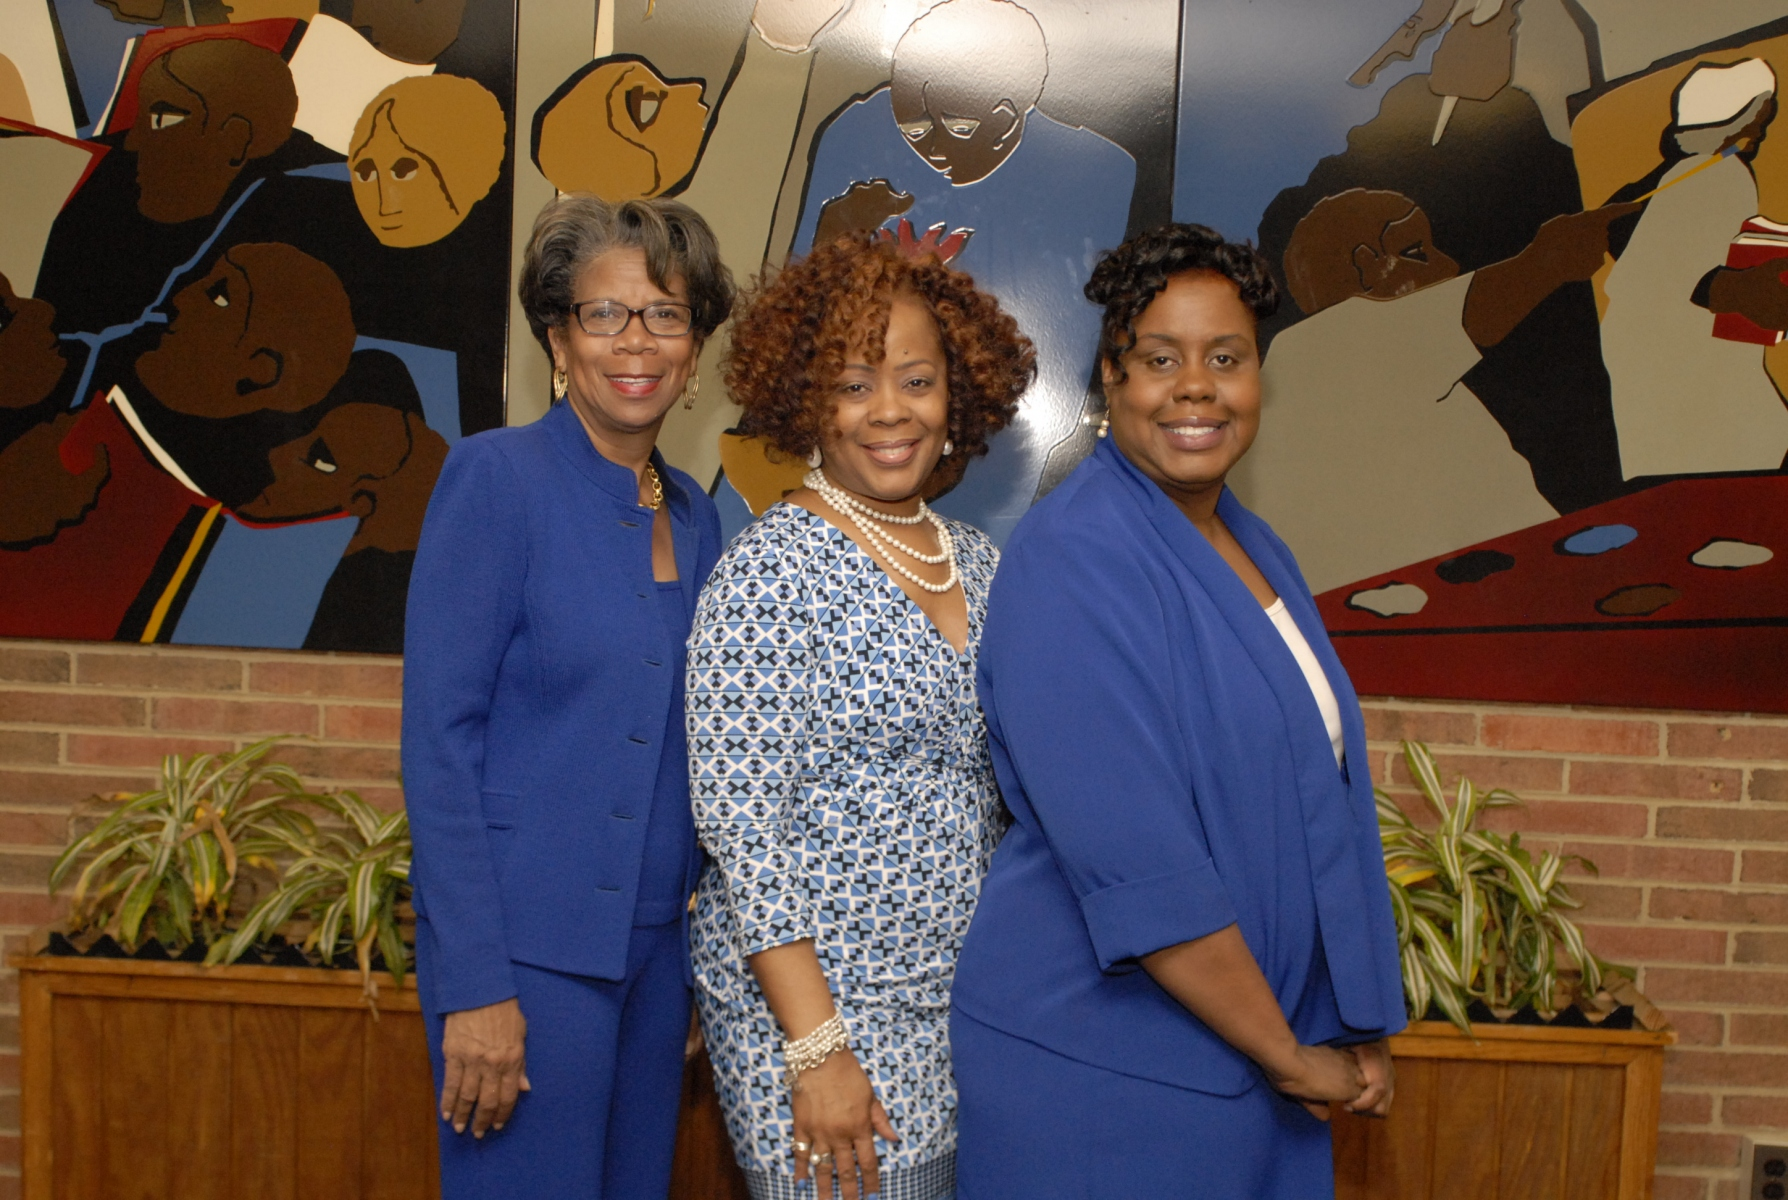 Board-Members-Stephanie-Minor-Harris-Bernadette-White-Jessica-Brewster-Johnson